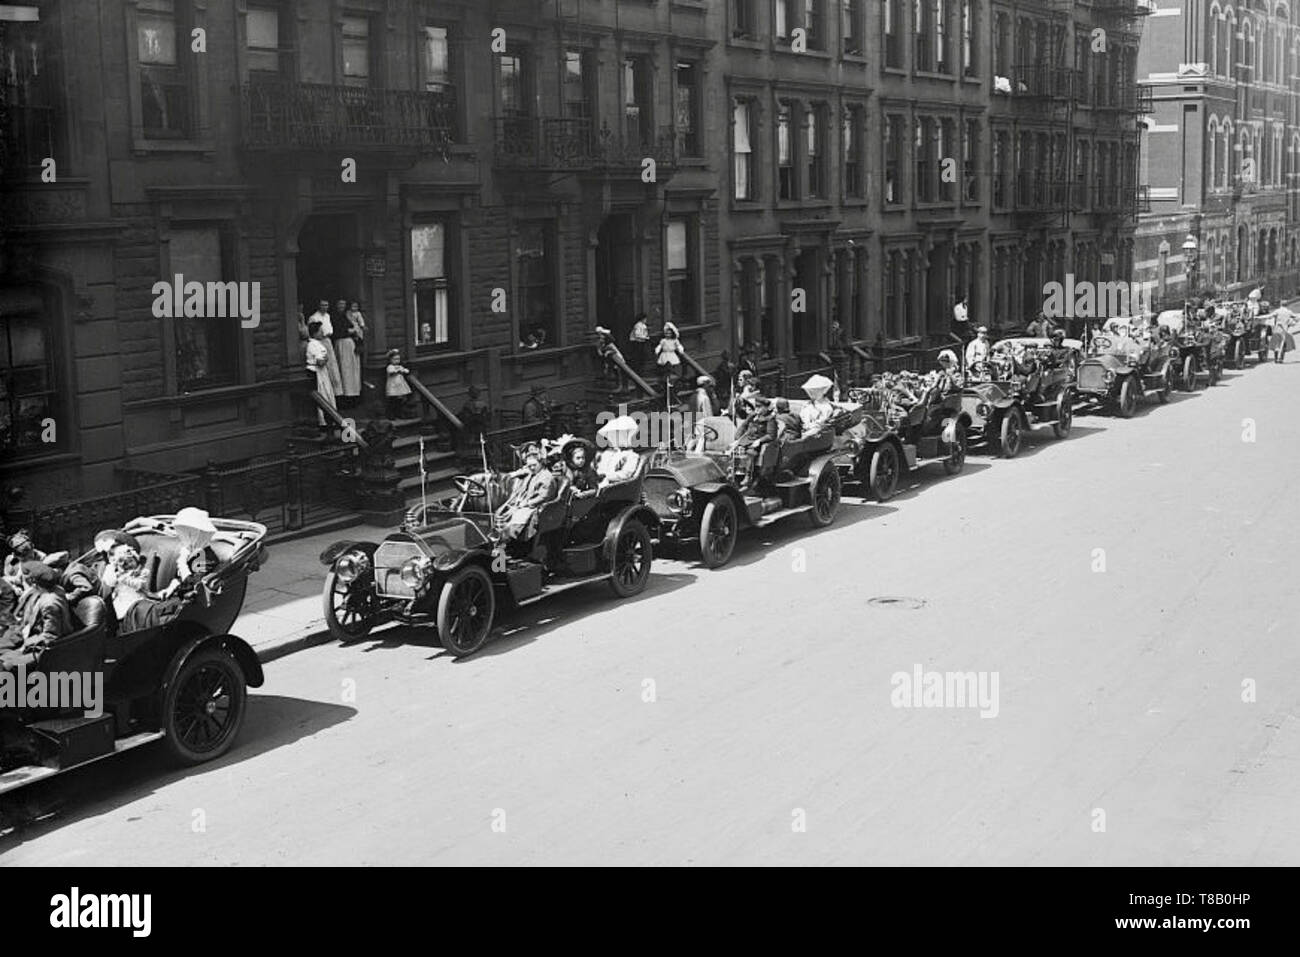 Auto rides for crippled children, New York 25 May 1908. - Stock Image